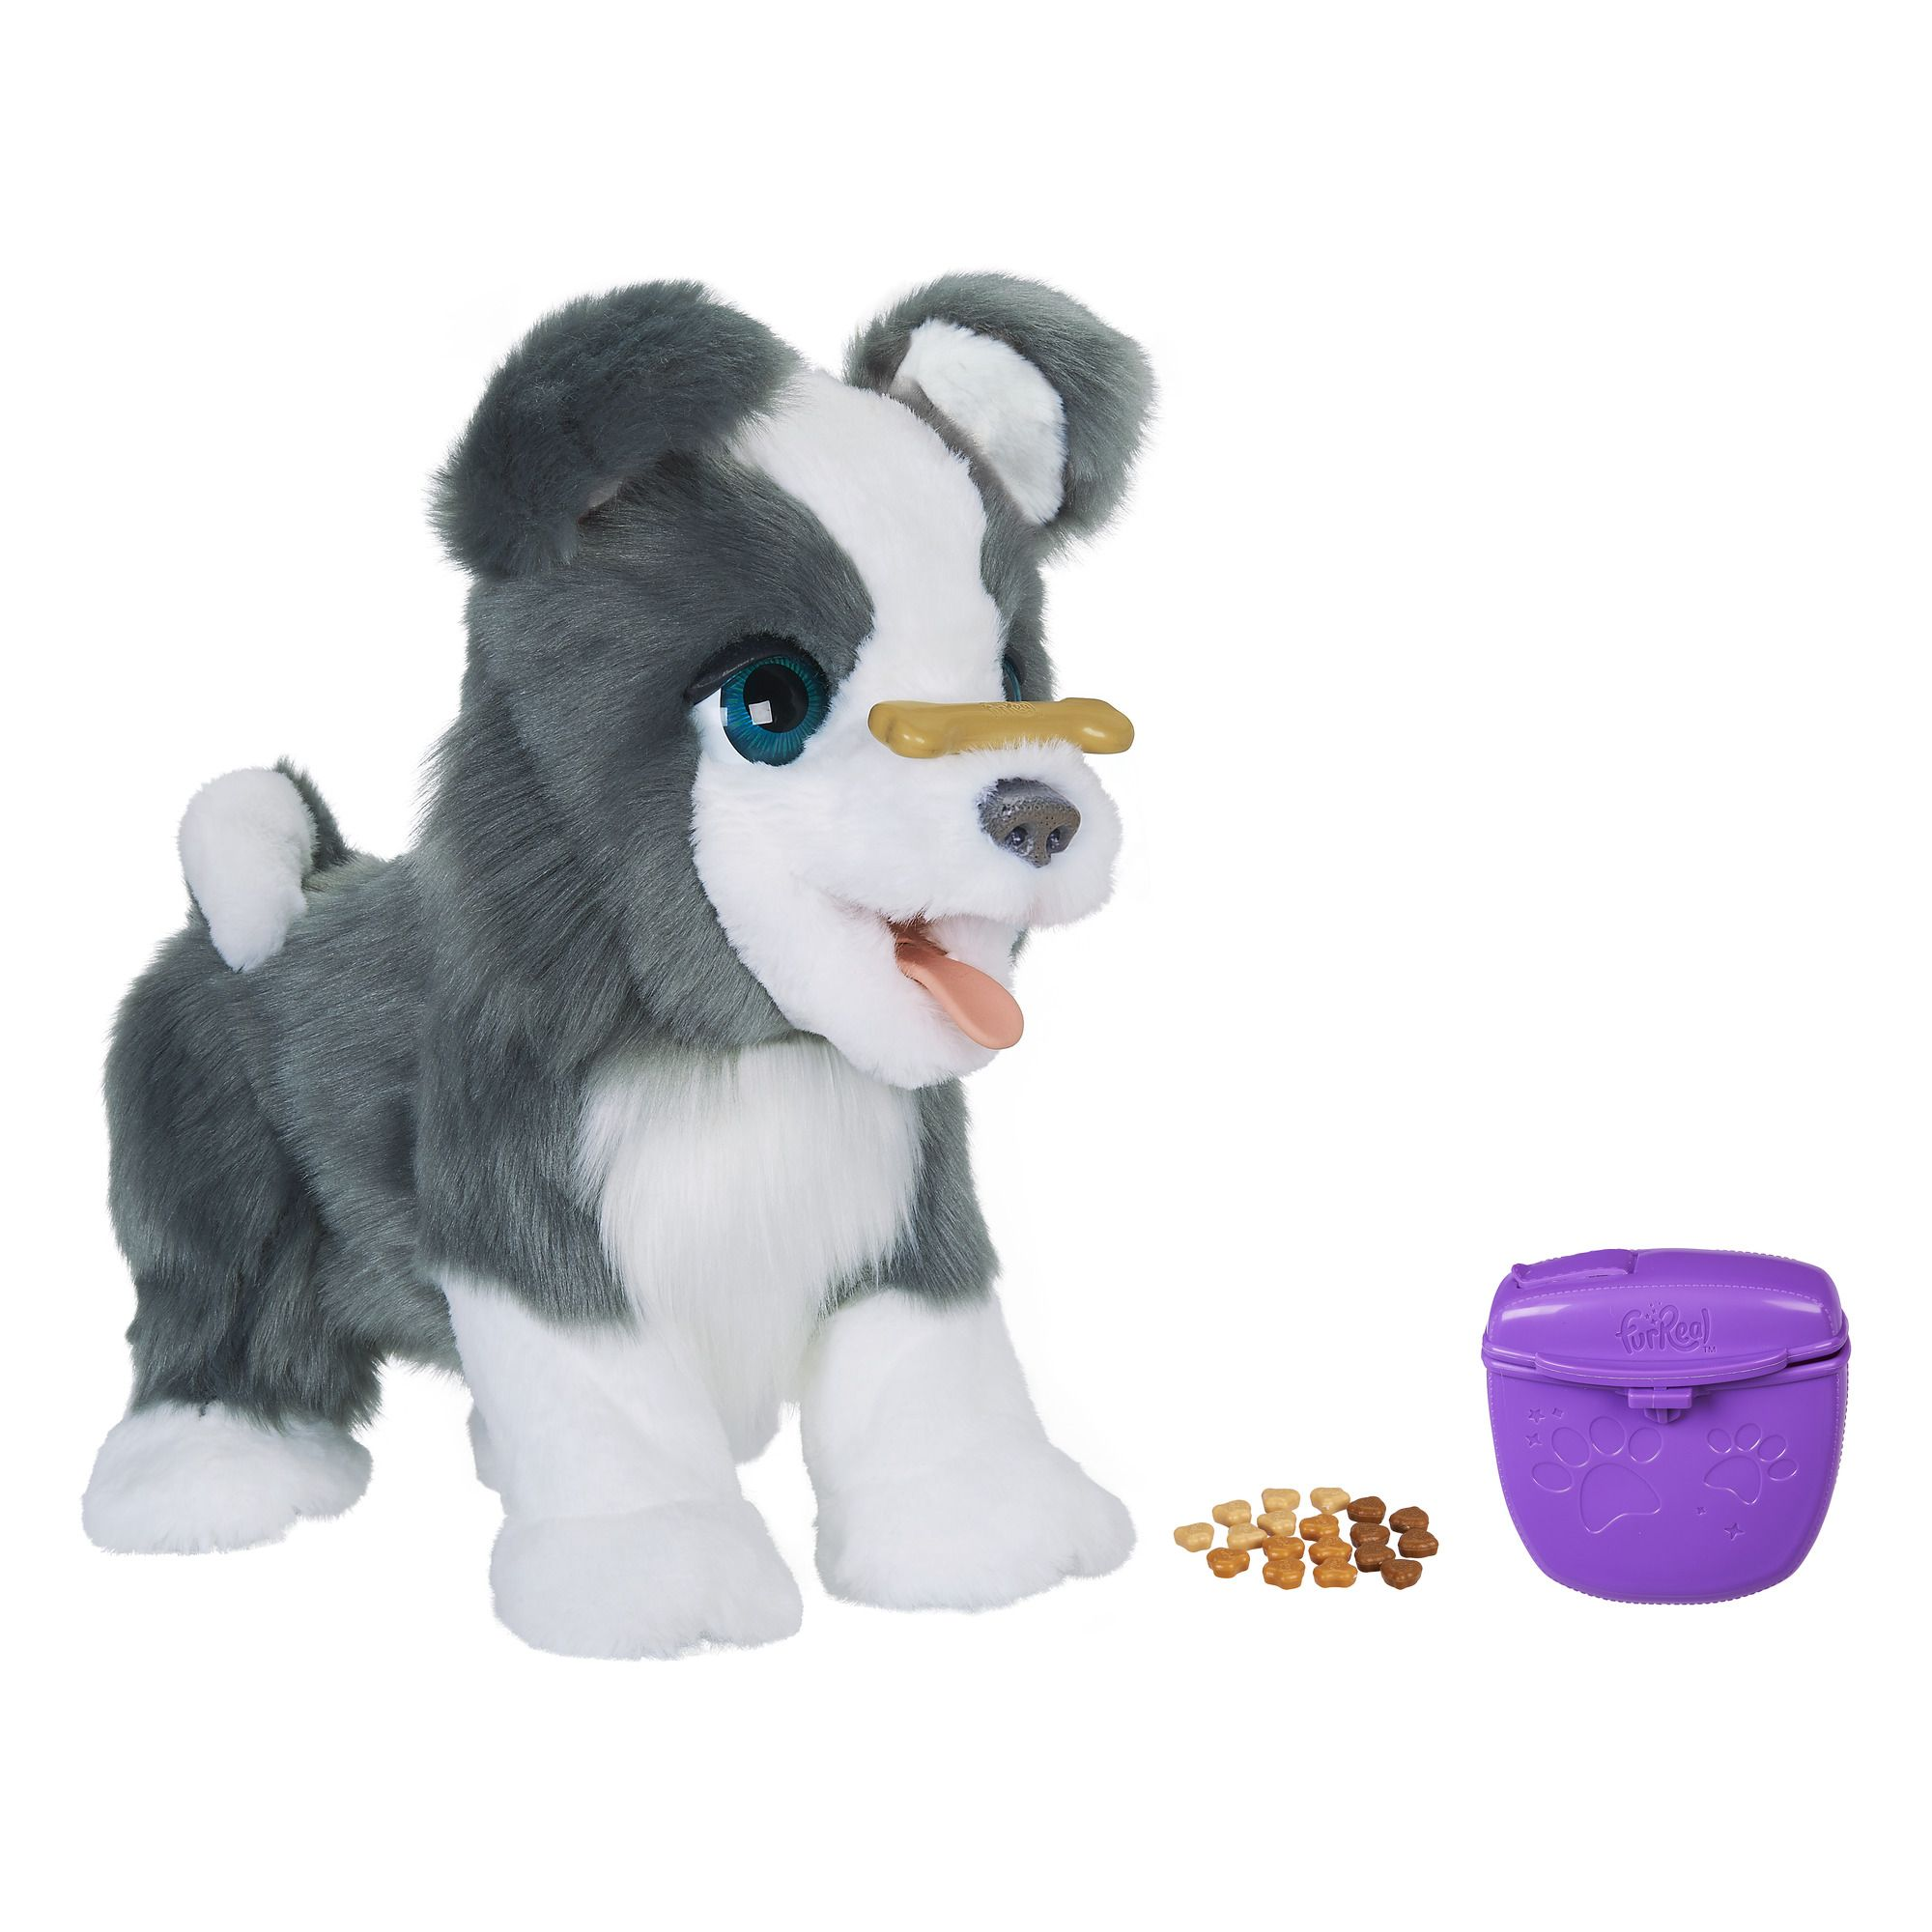 Furreal Friends Furreal Ricky The Trick Lovin Pup In 2020 Fur Real Friends Little Live Pets Pet Toys